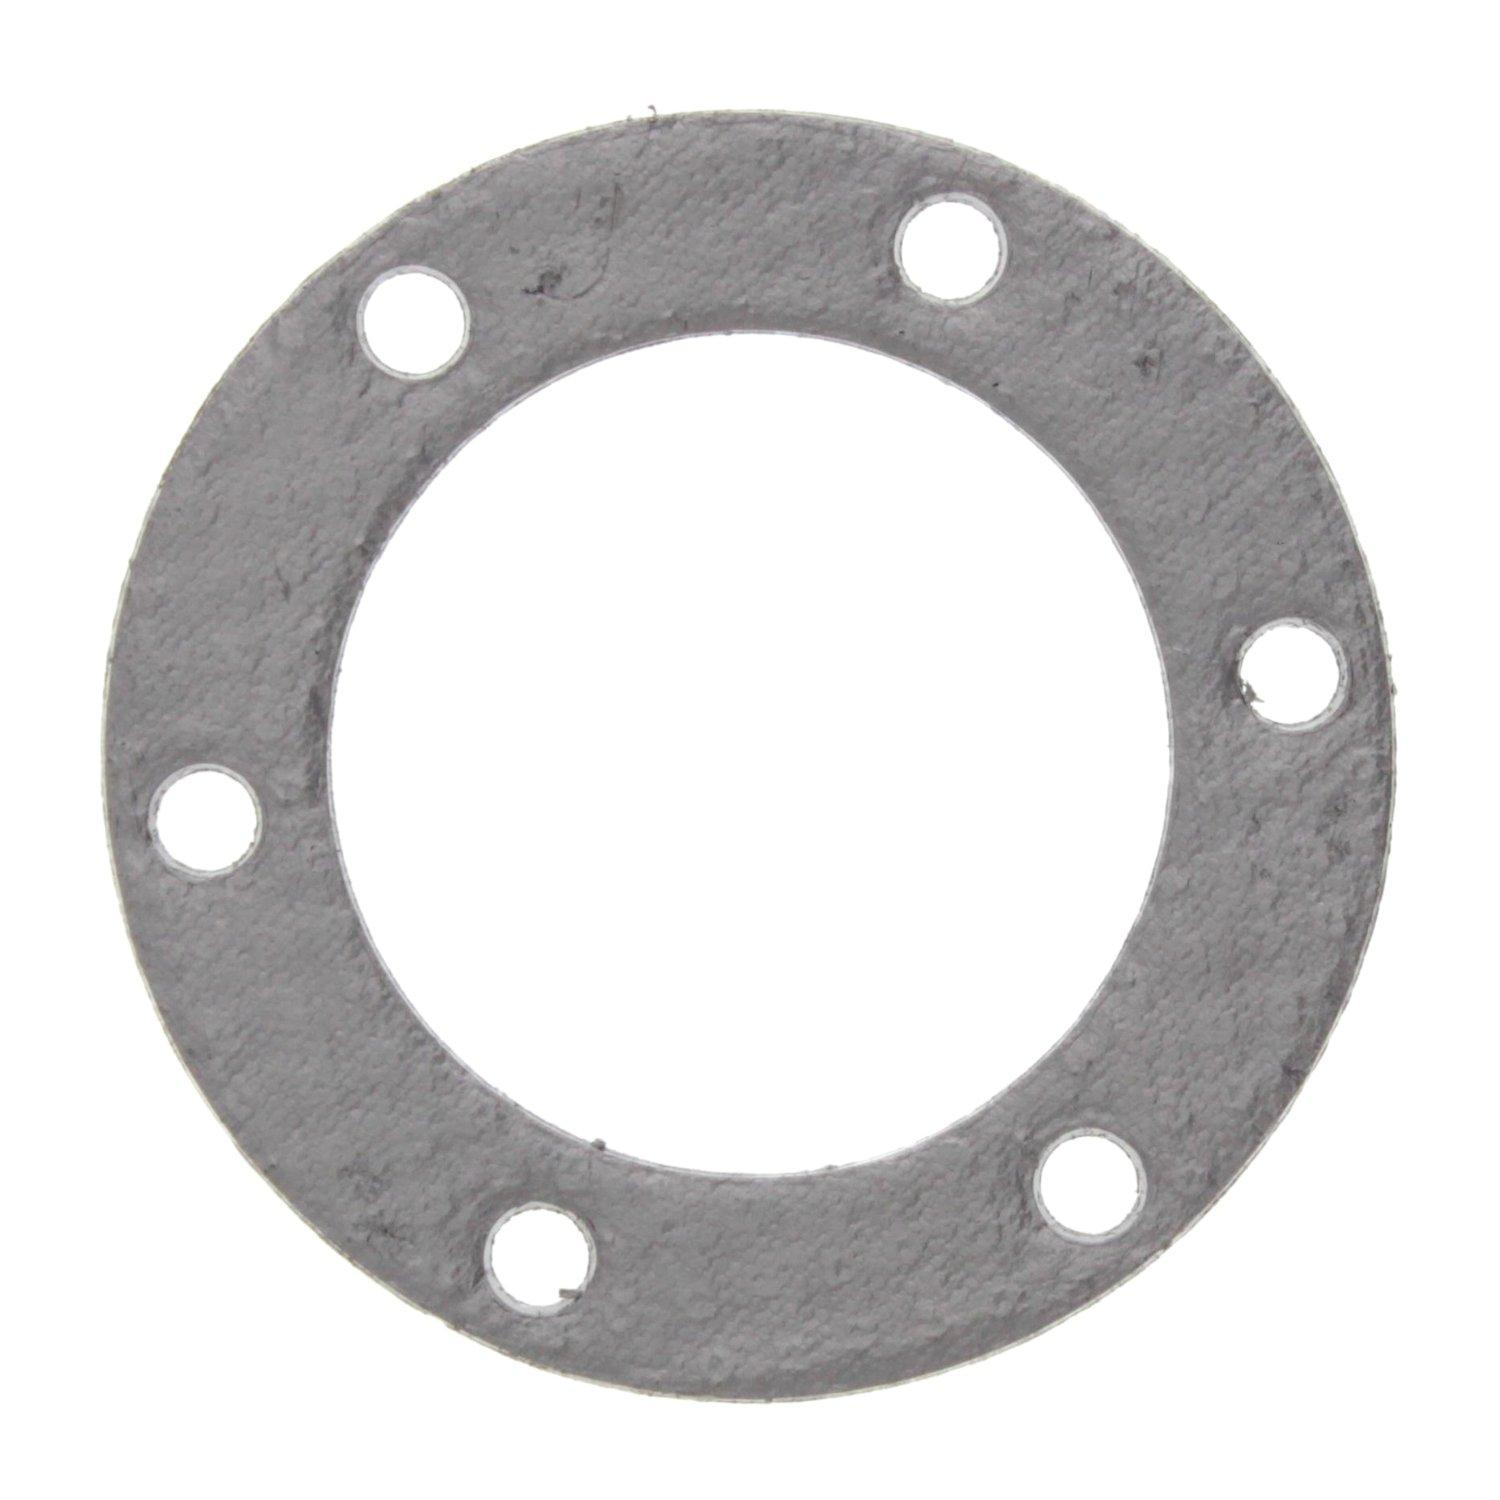 RATIONAL GASKET FOR EXHAUST FE CPC-LINE 101/201/G AS OF 10/97